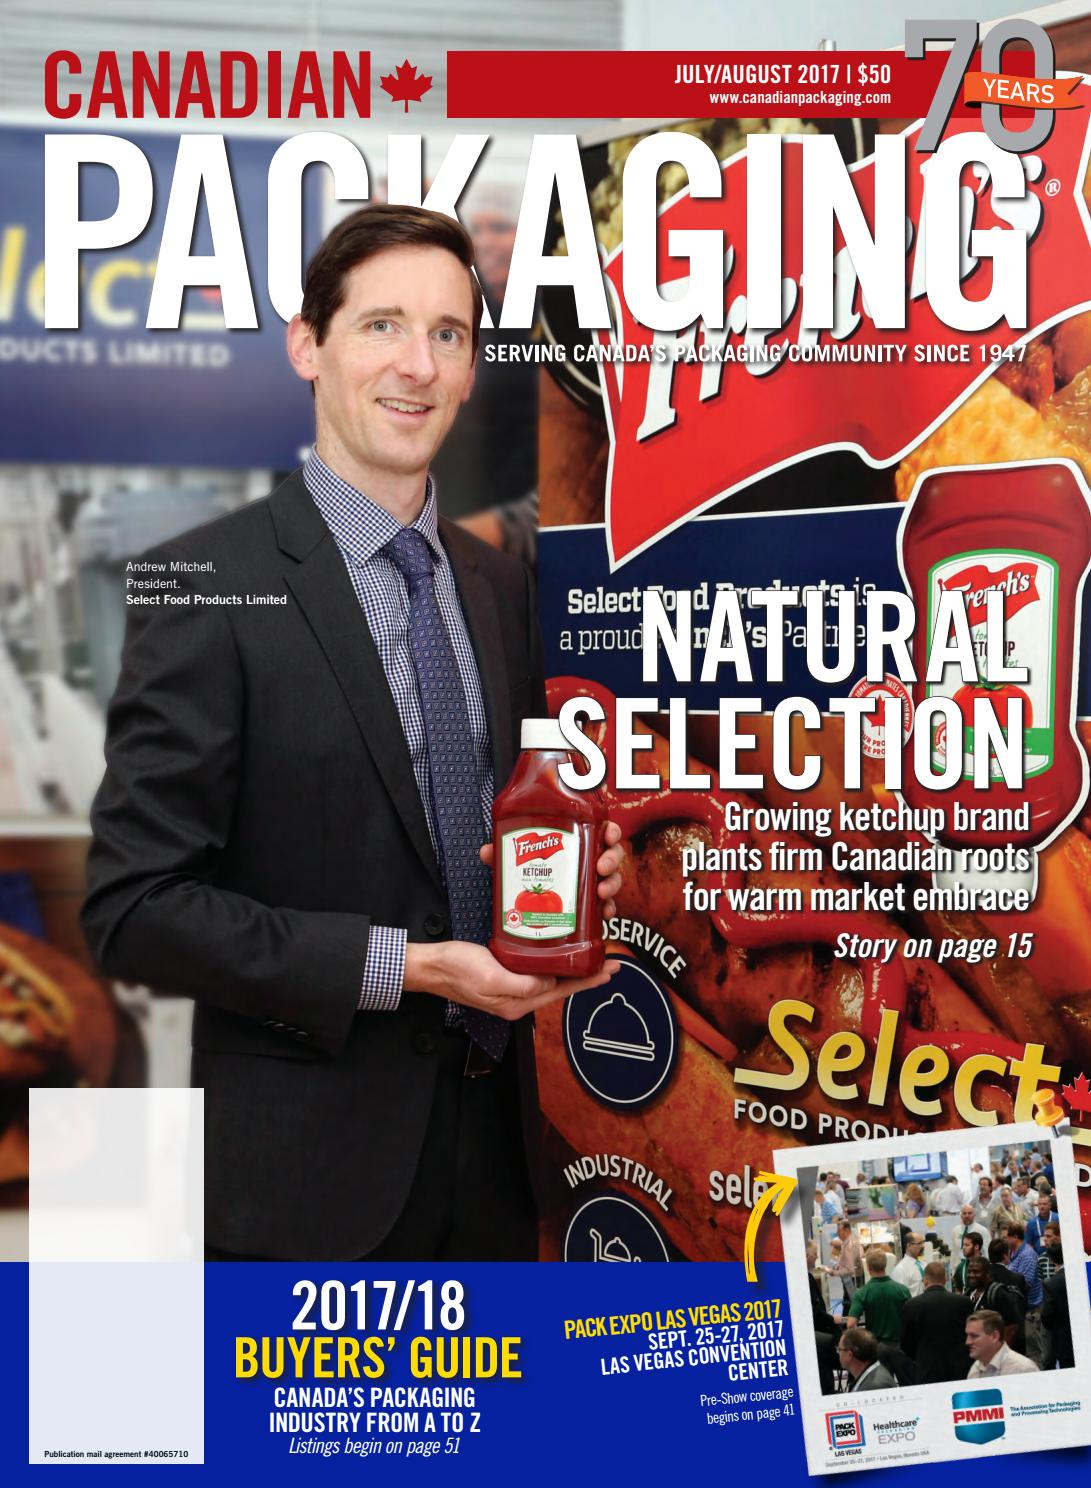 c0528d8b568 Canadian Packaging July August 2017 by Annex Business Media - issuu